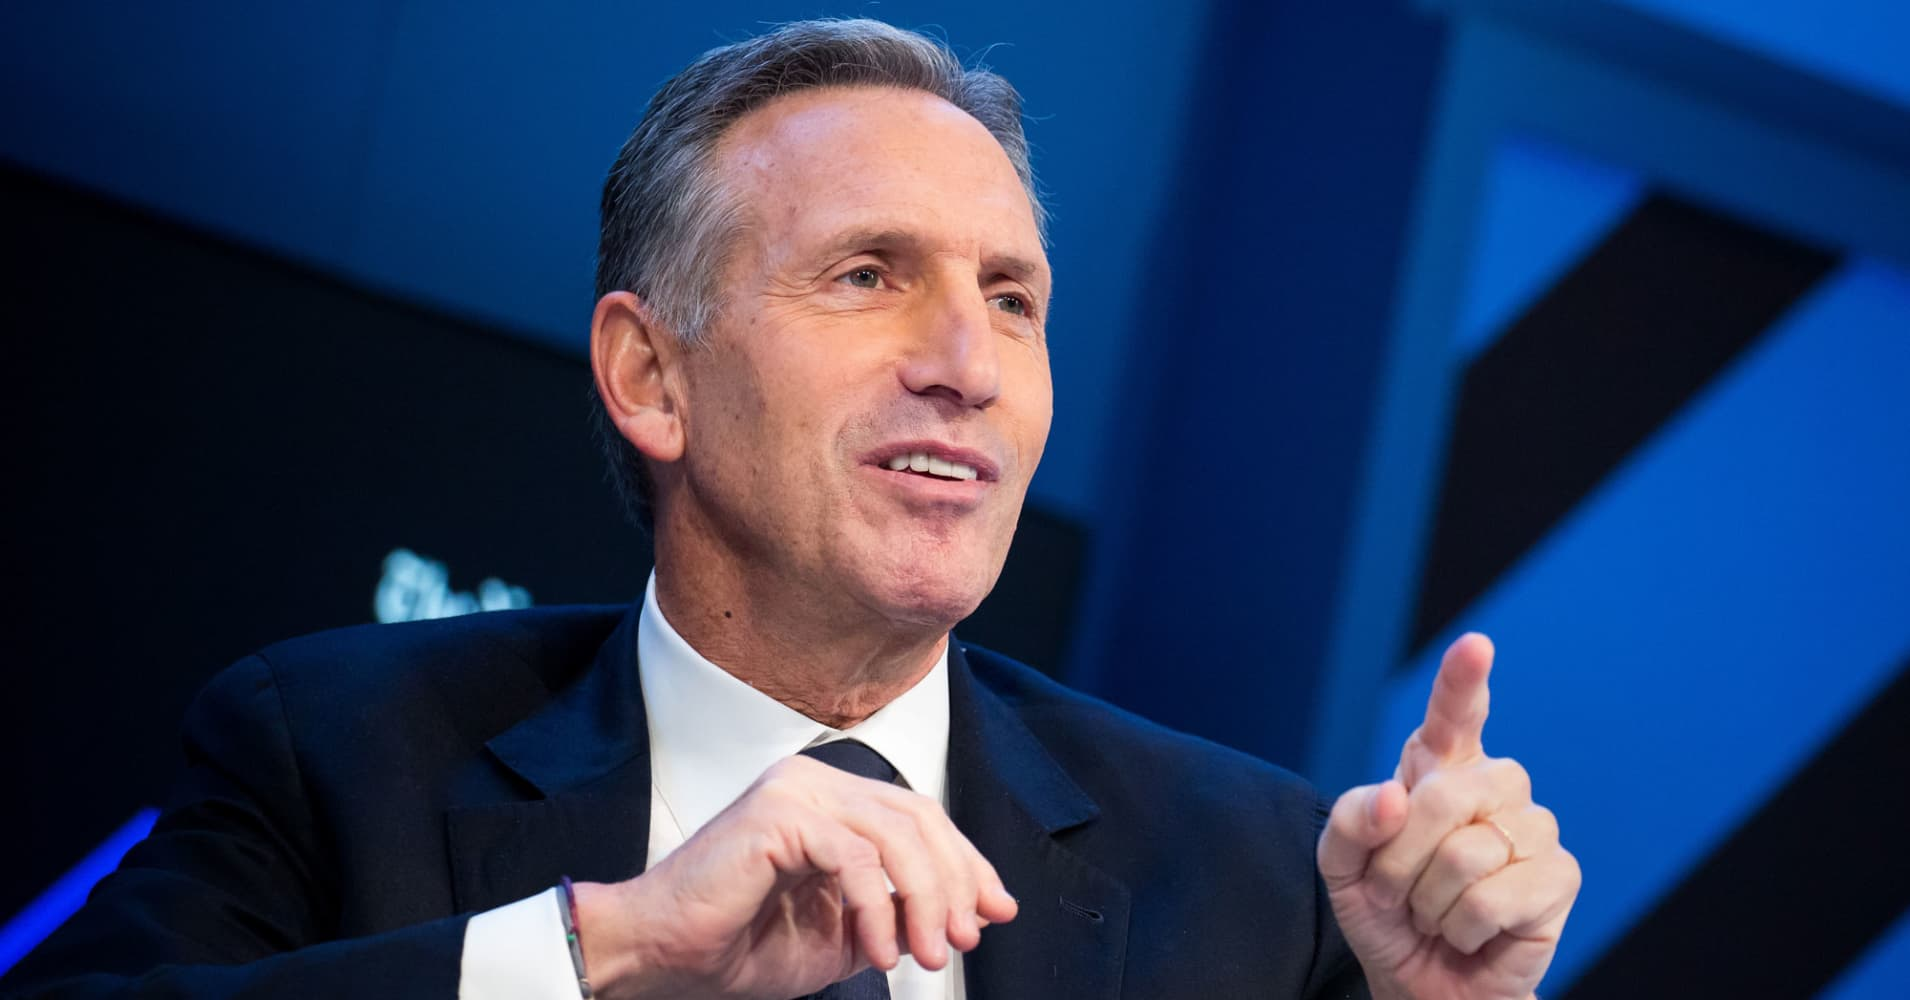 Ex-Starbucks CEO Howard Schultz weighs independent bid for the presidency